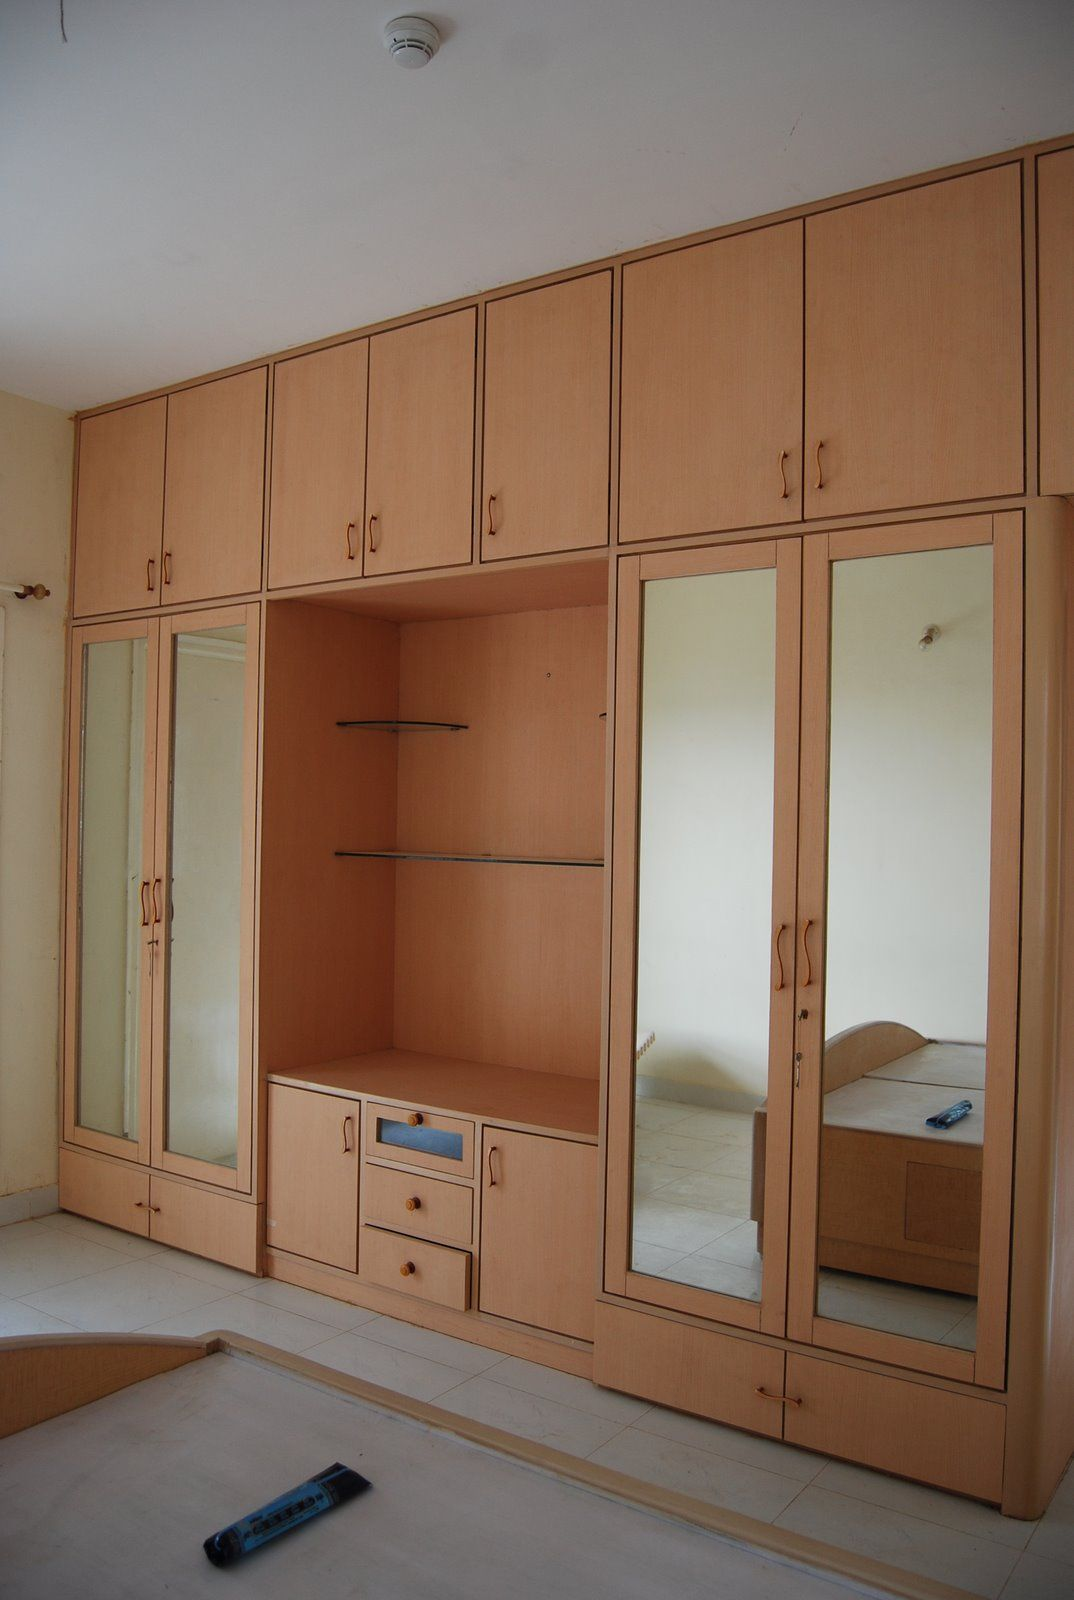 Simple Bedroom Cupboard Designs bedroom wardrobe design playwood wadrobe with cabinets also